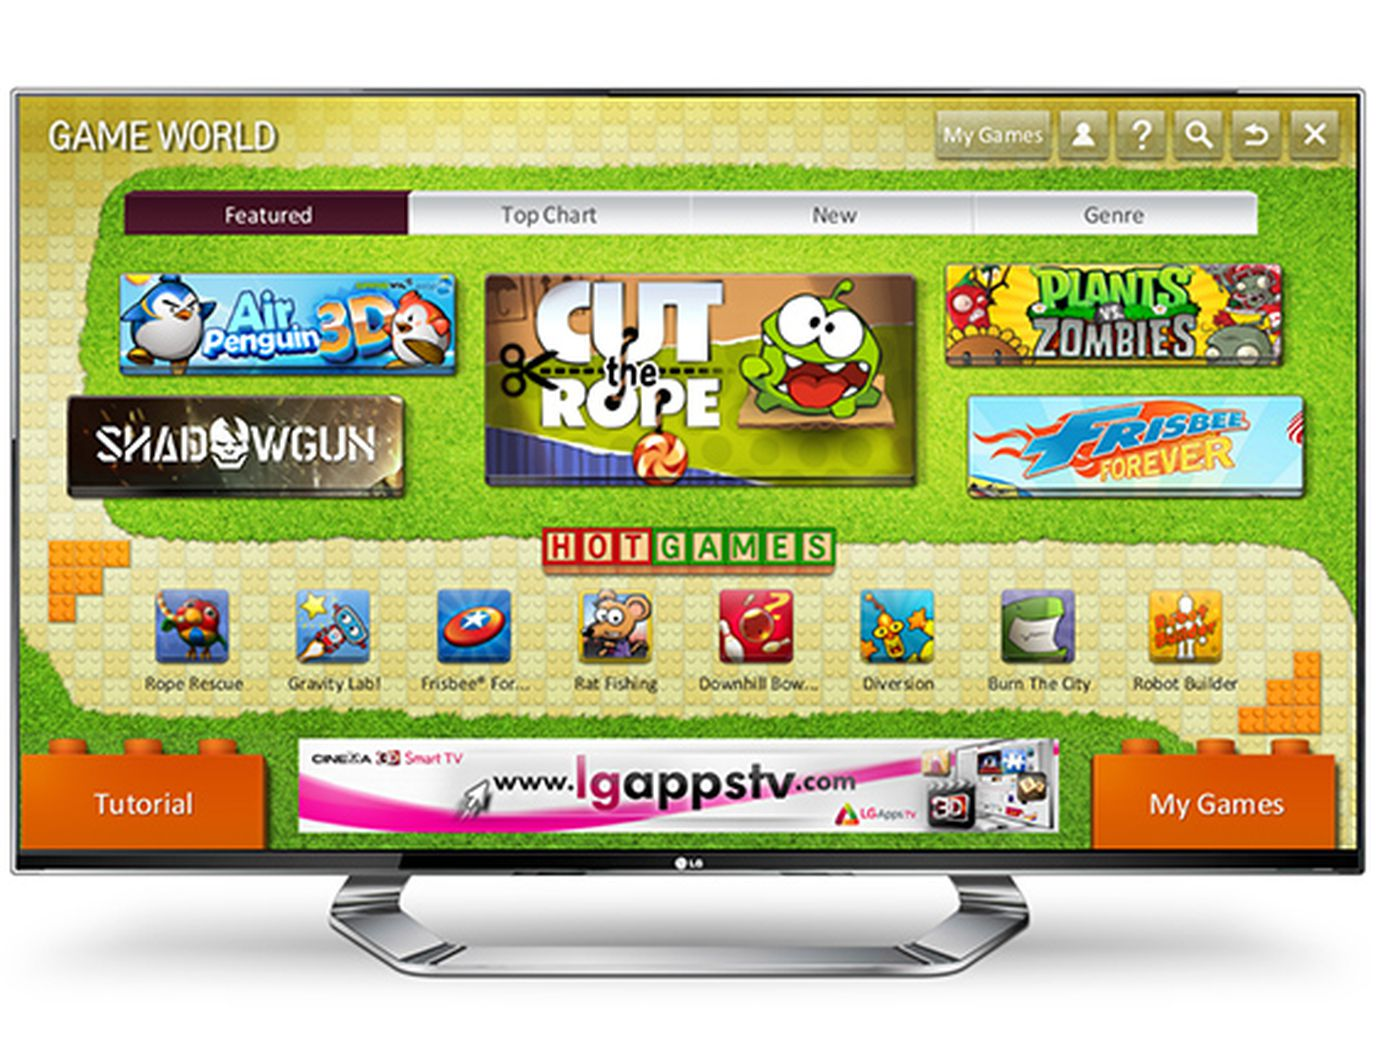 LG launching Smart TV game portal, big-name games on the way